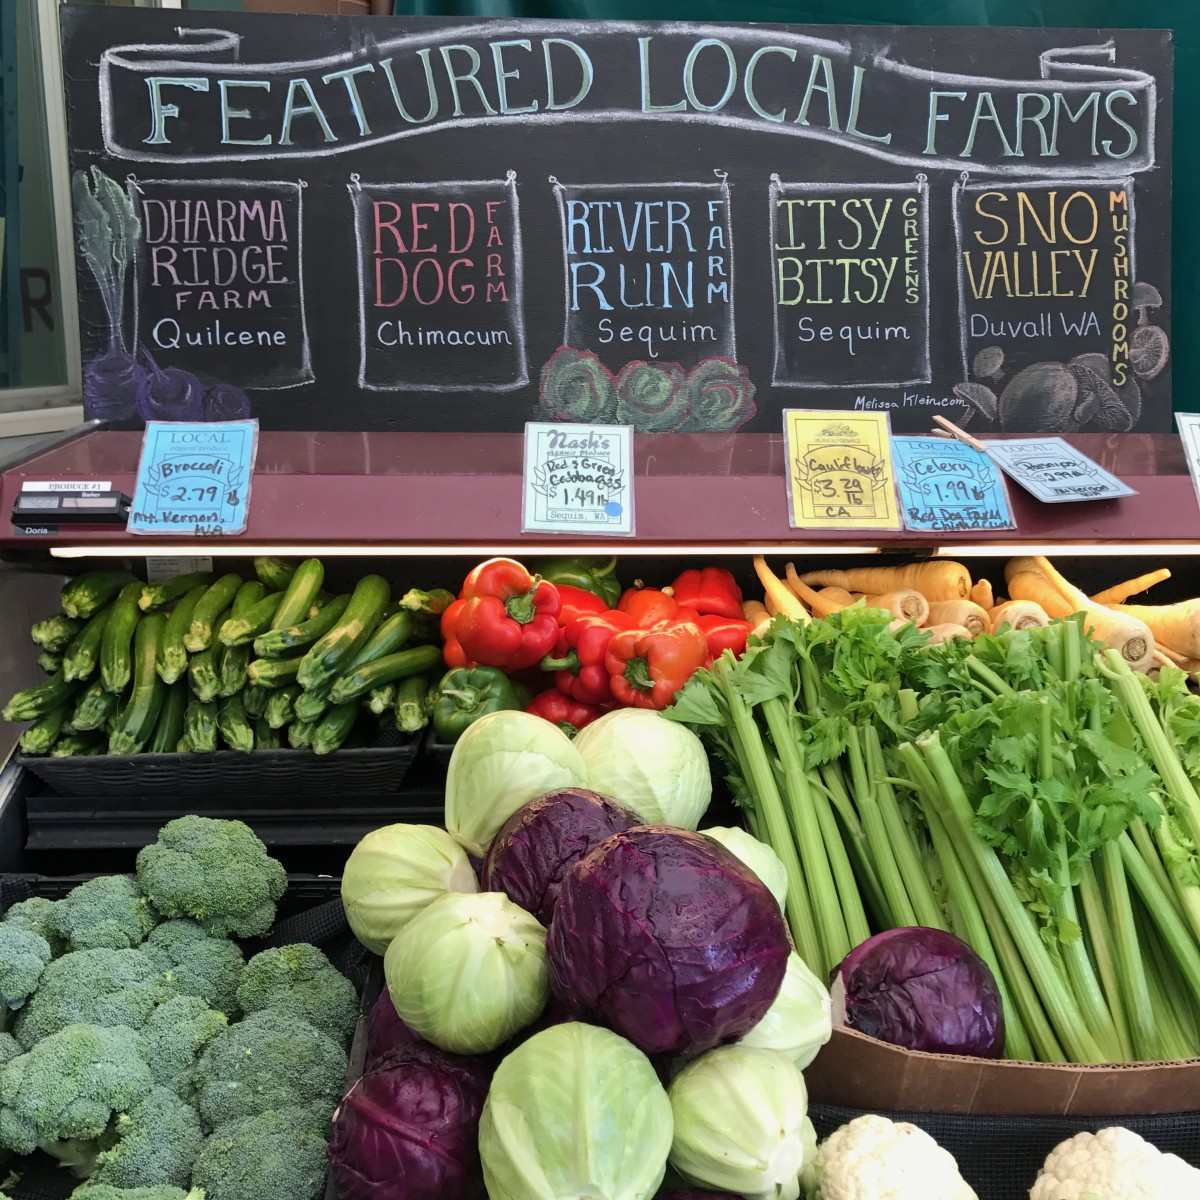 Nash's Organic Produce in Sequim Washington